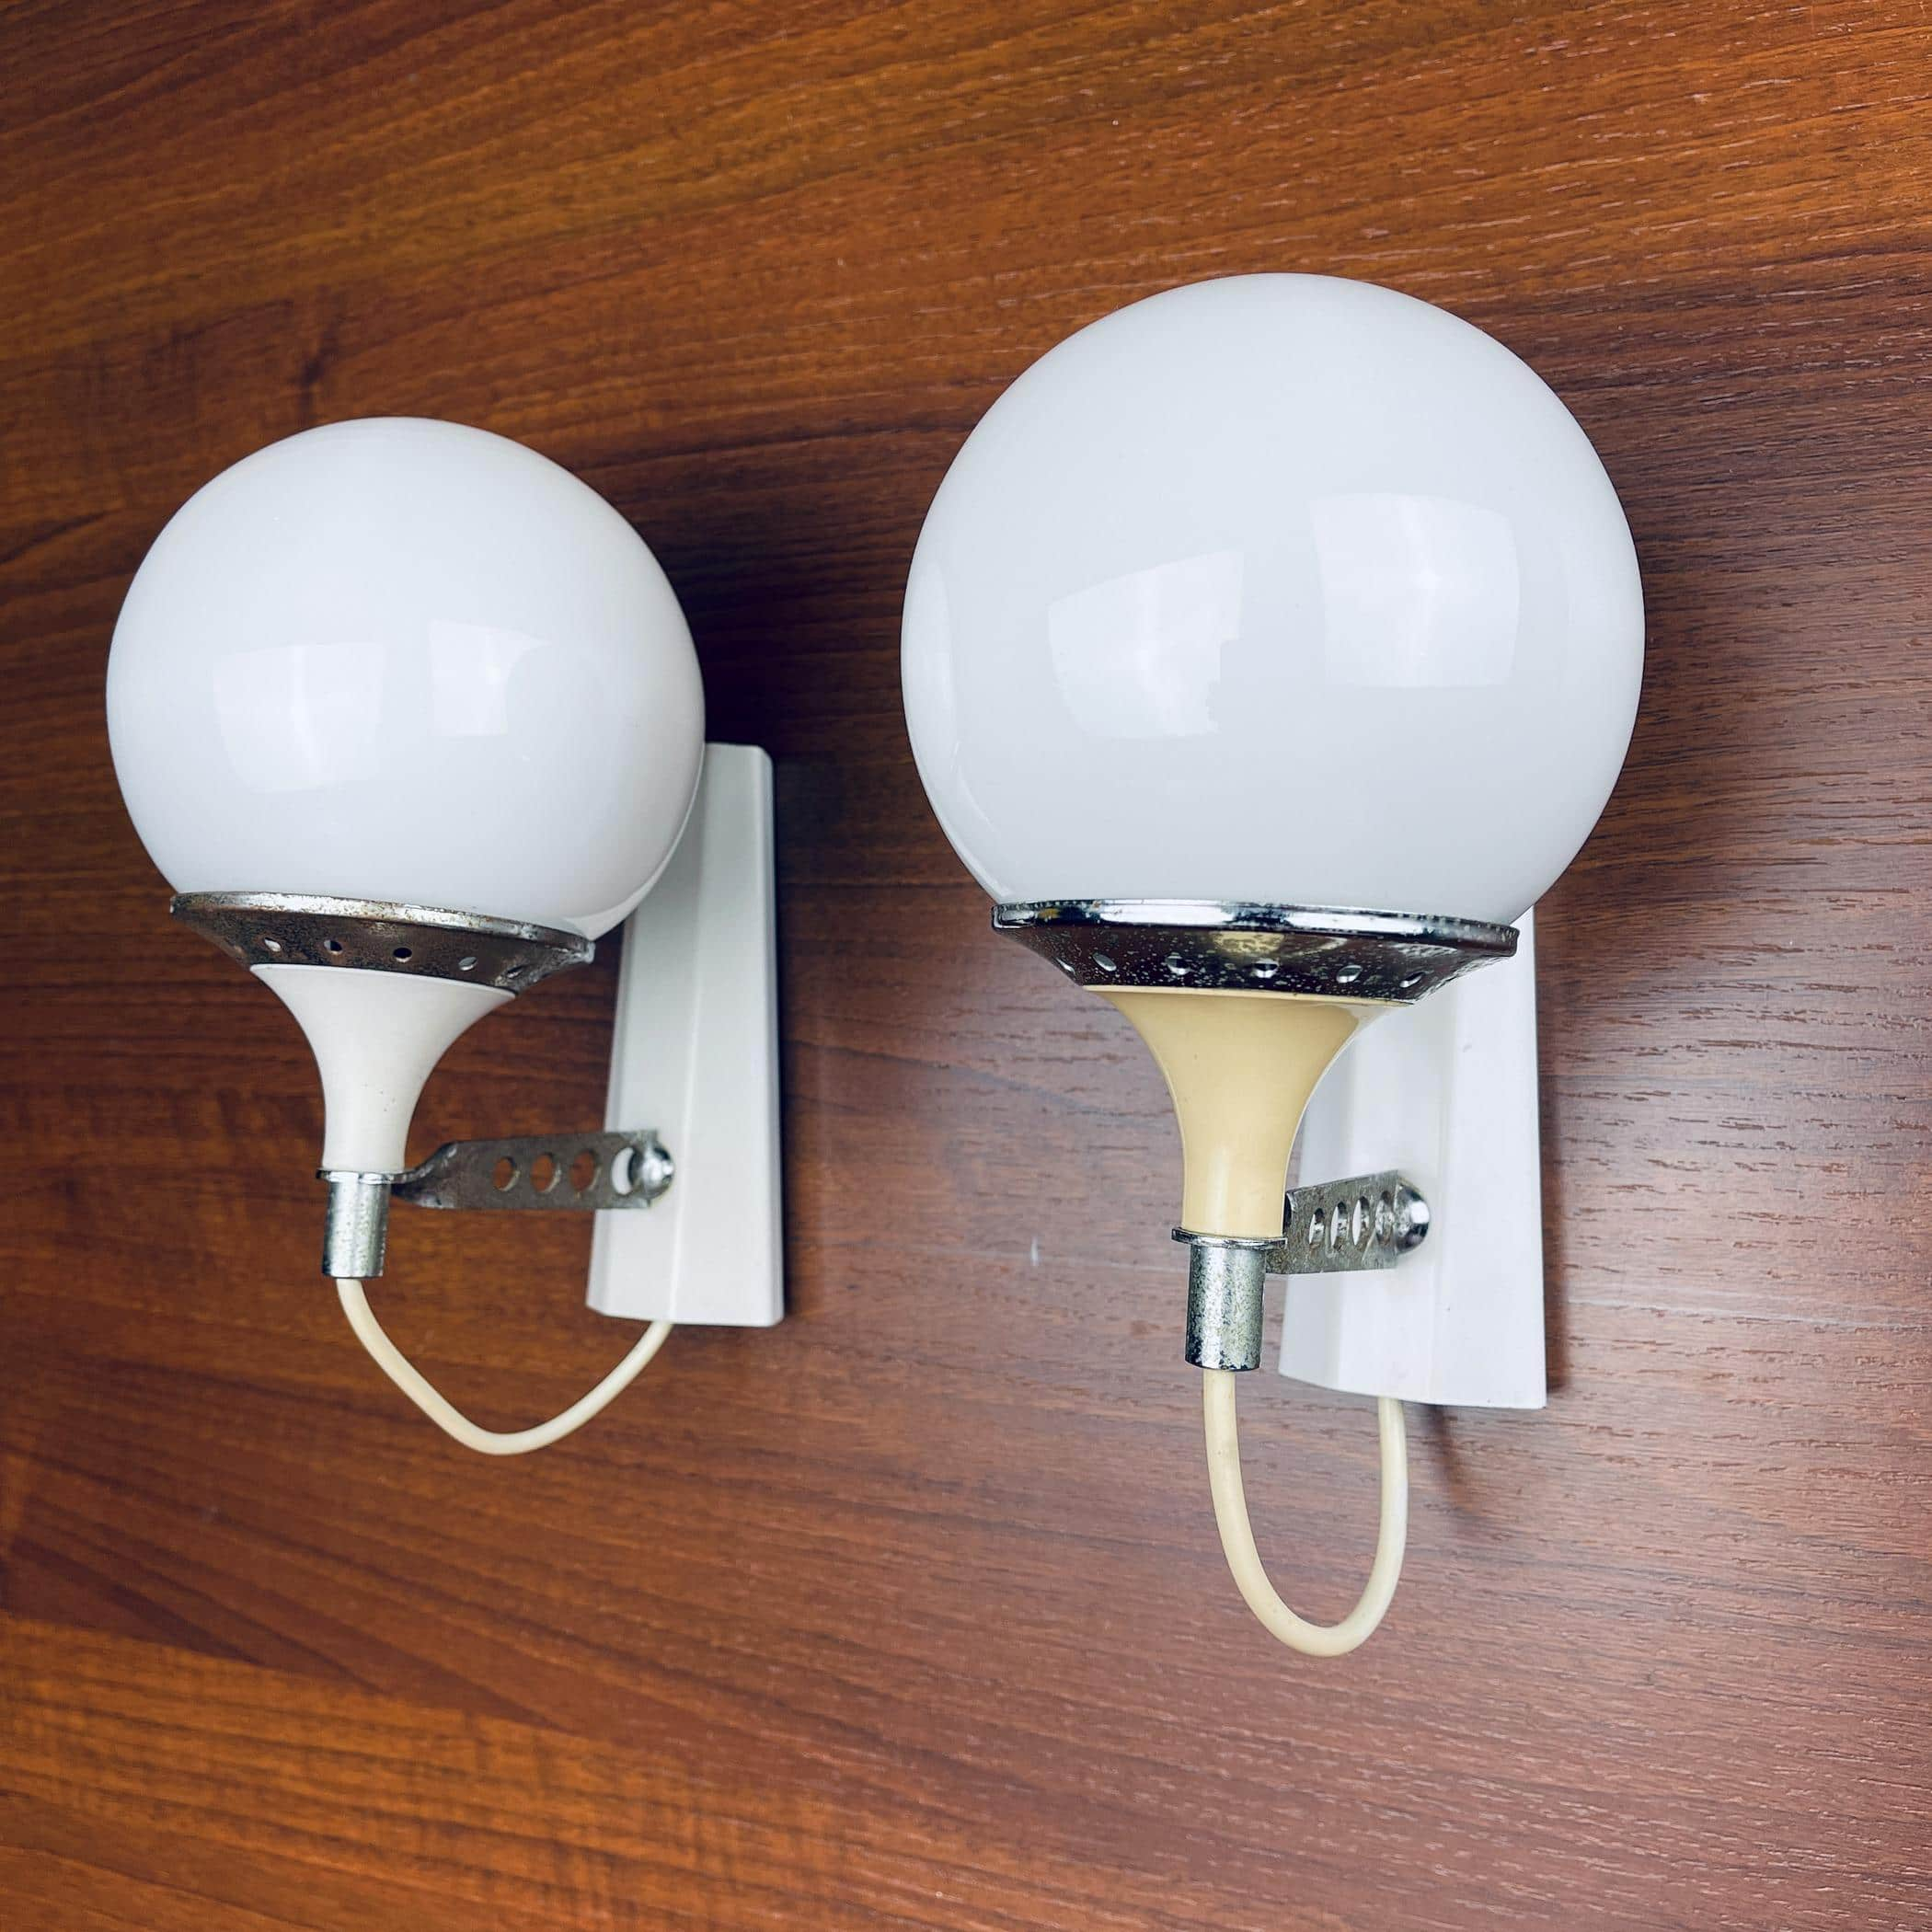 Pair of mid-century white sconces Targetti Sankey Italy 1960s Retro wall lamps space age